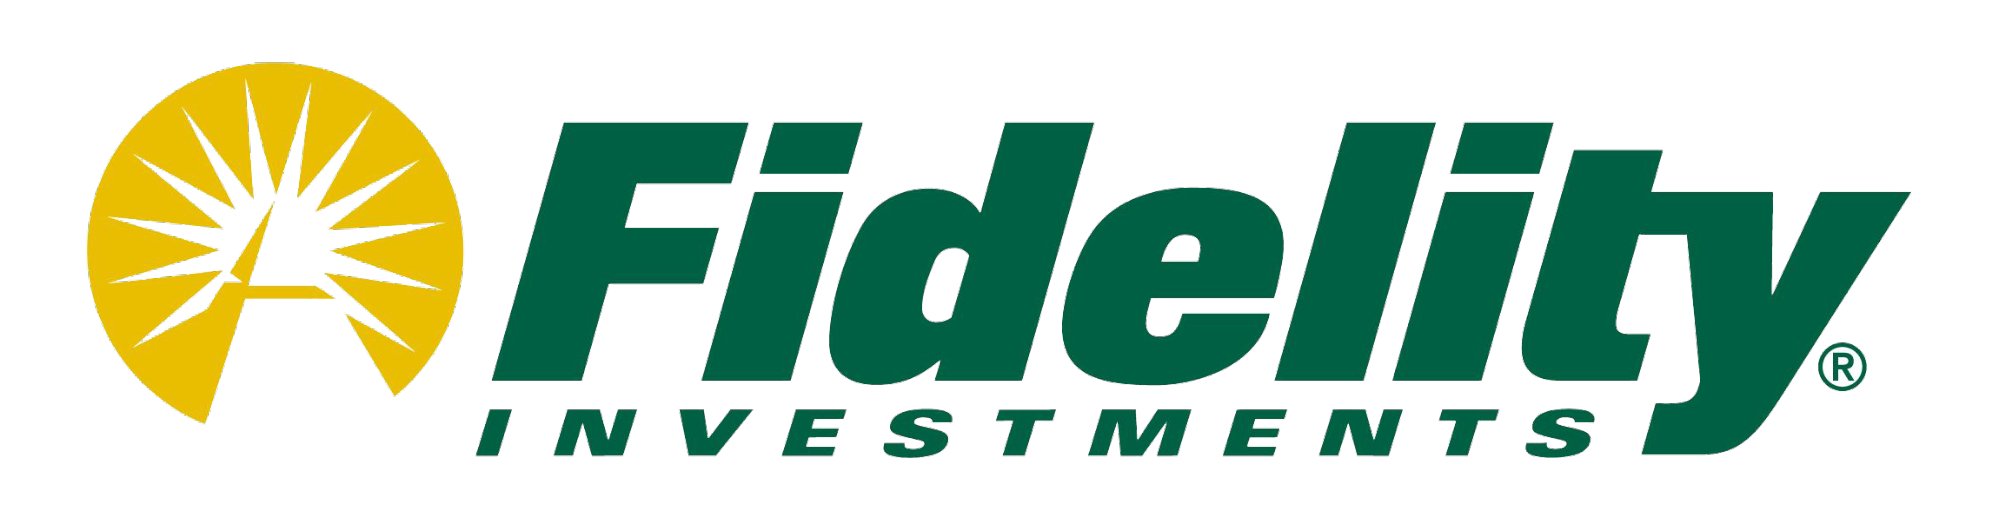 Self Directed Ira Fidelity >> Fidelity S Involvent In The Crypto Industry What Do They